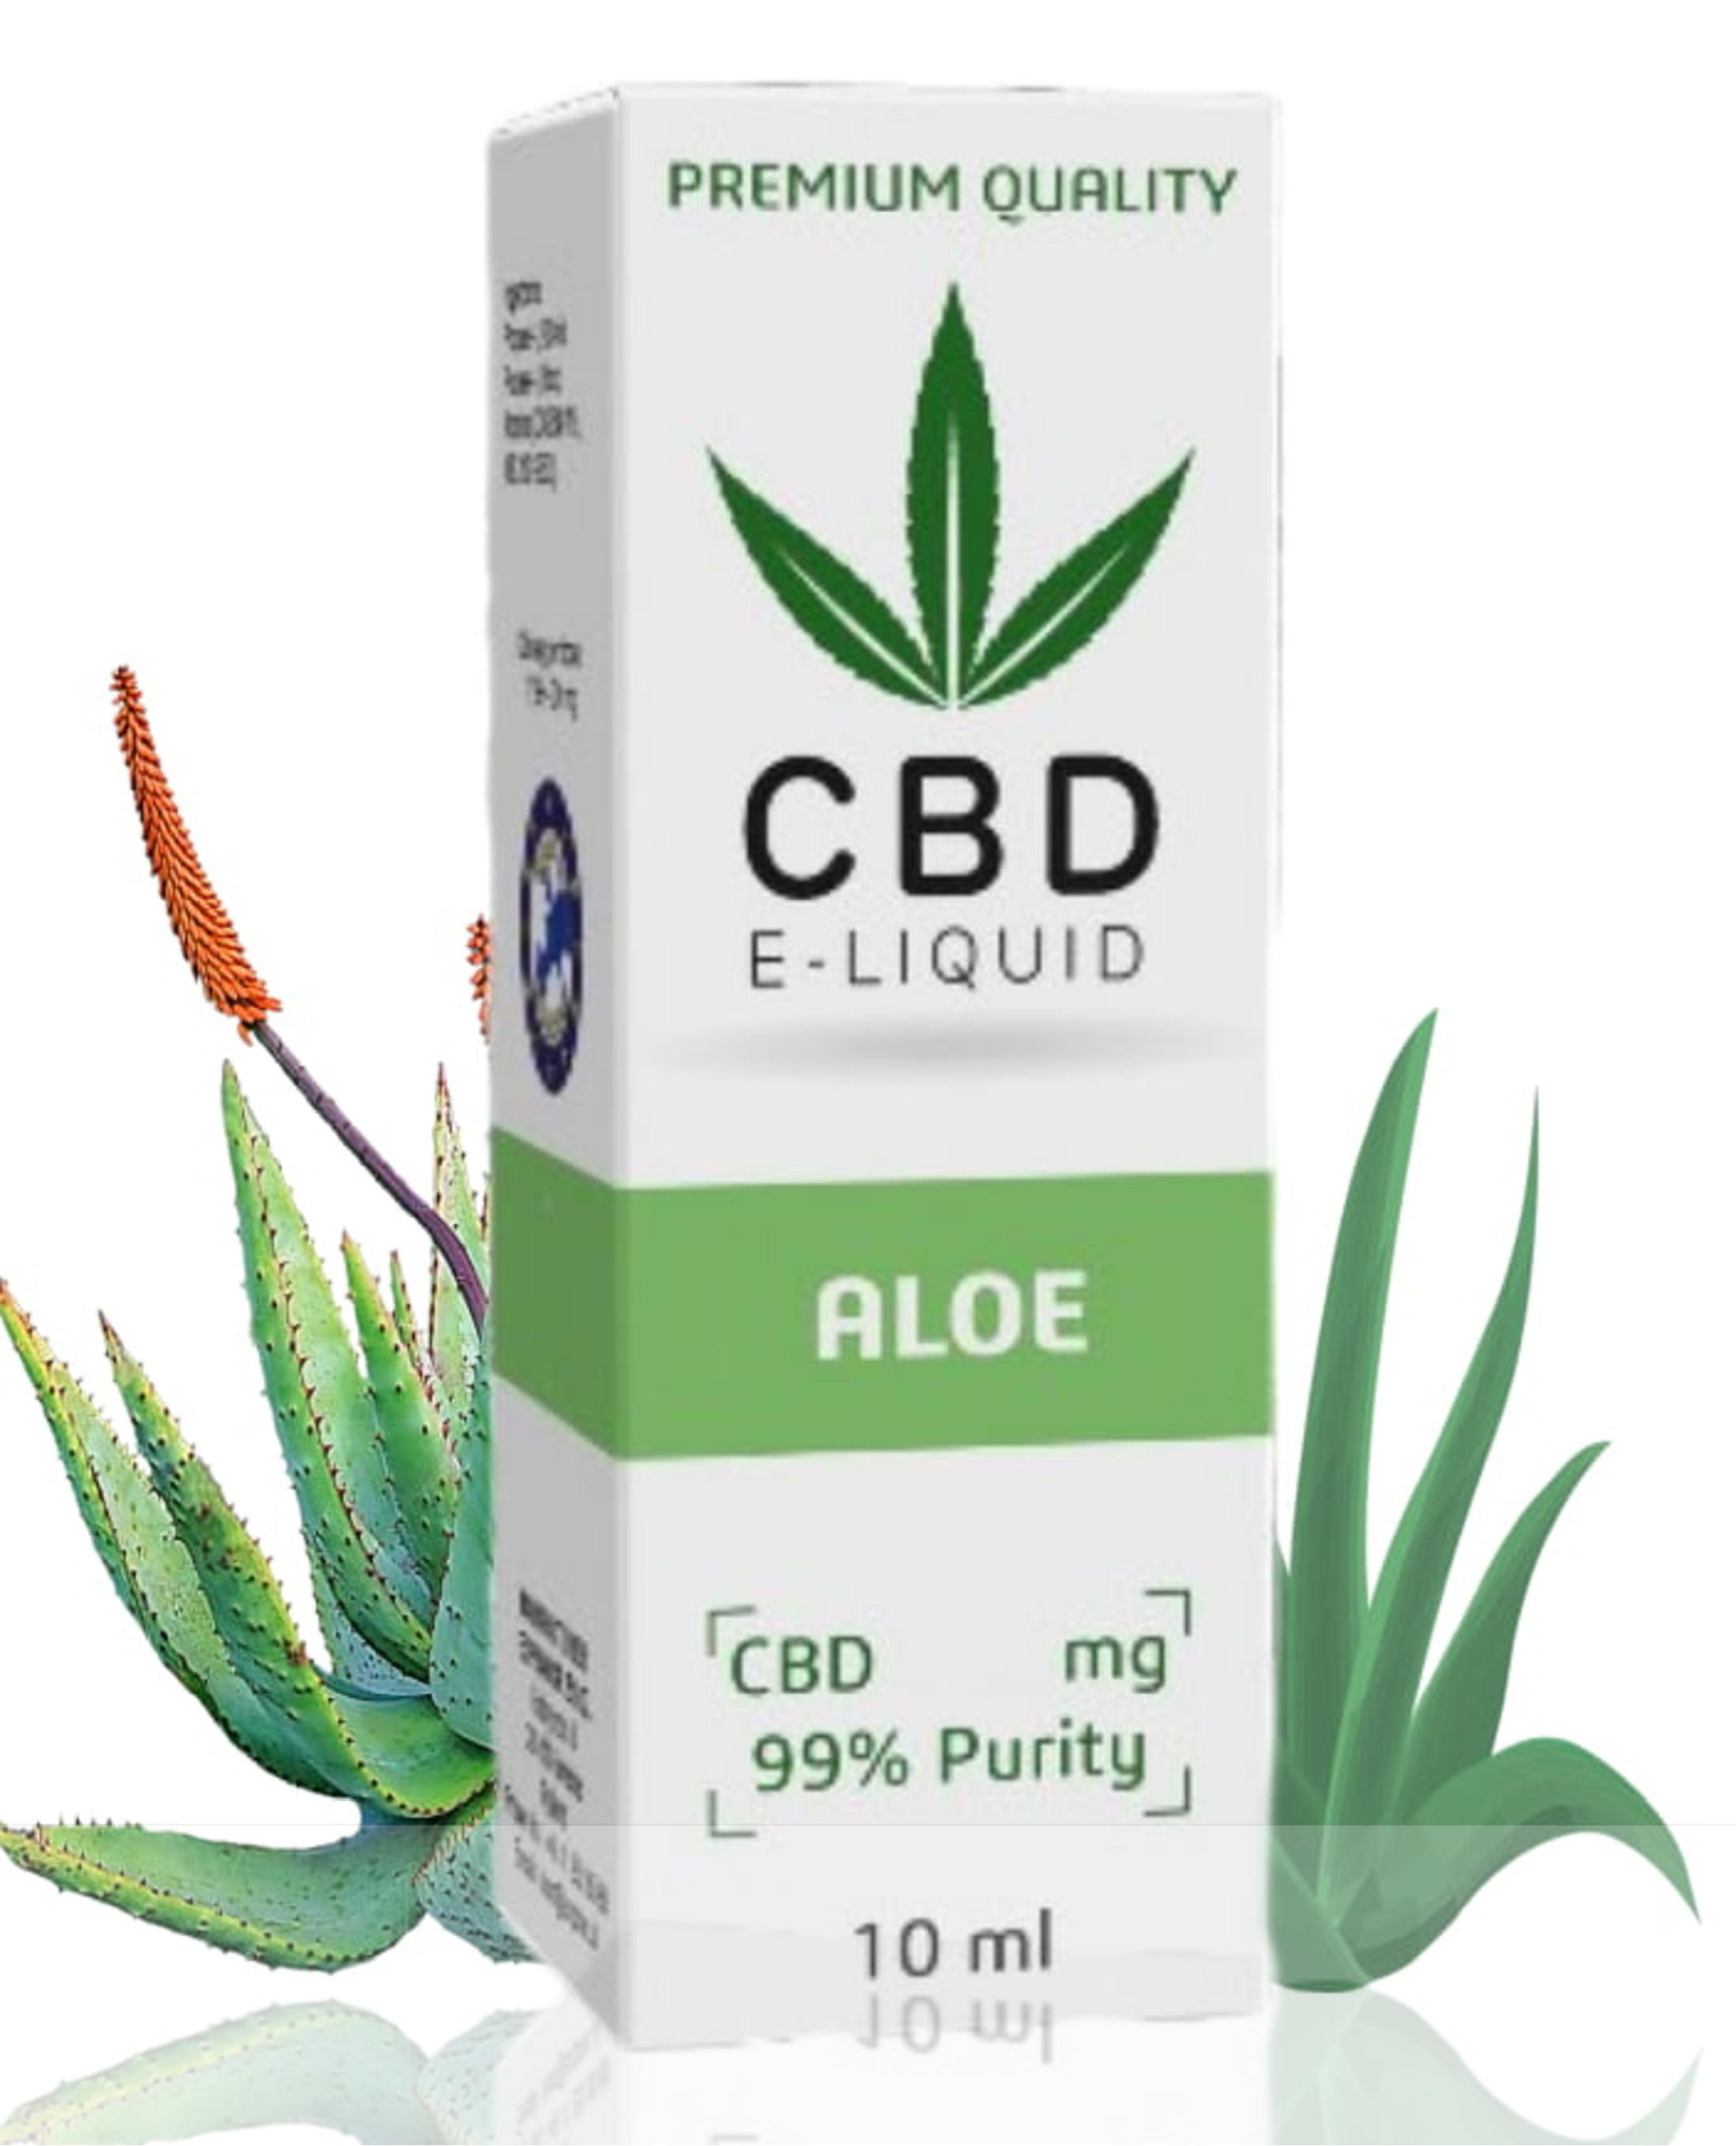 10 ml CBD Vape Liquid - Aloe 600mg (6%)